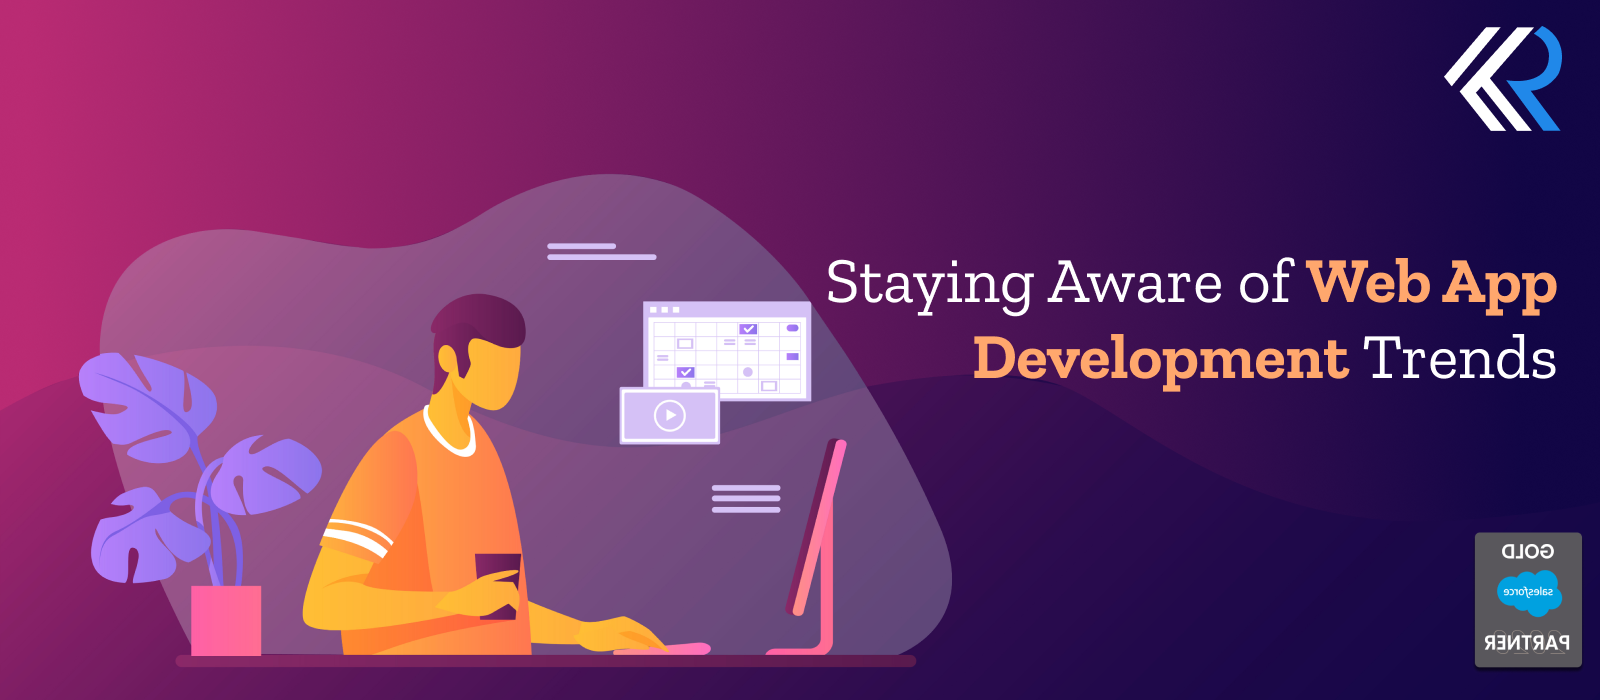 Staying Aware of Web App Development Trends